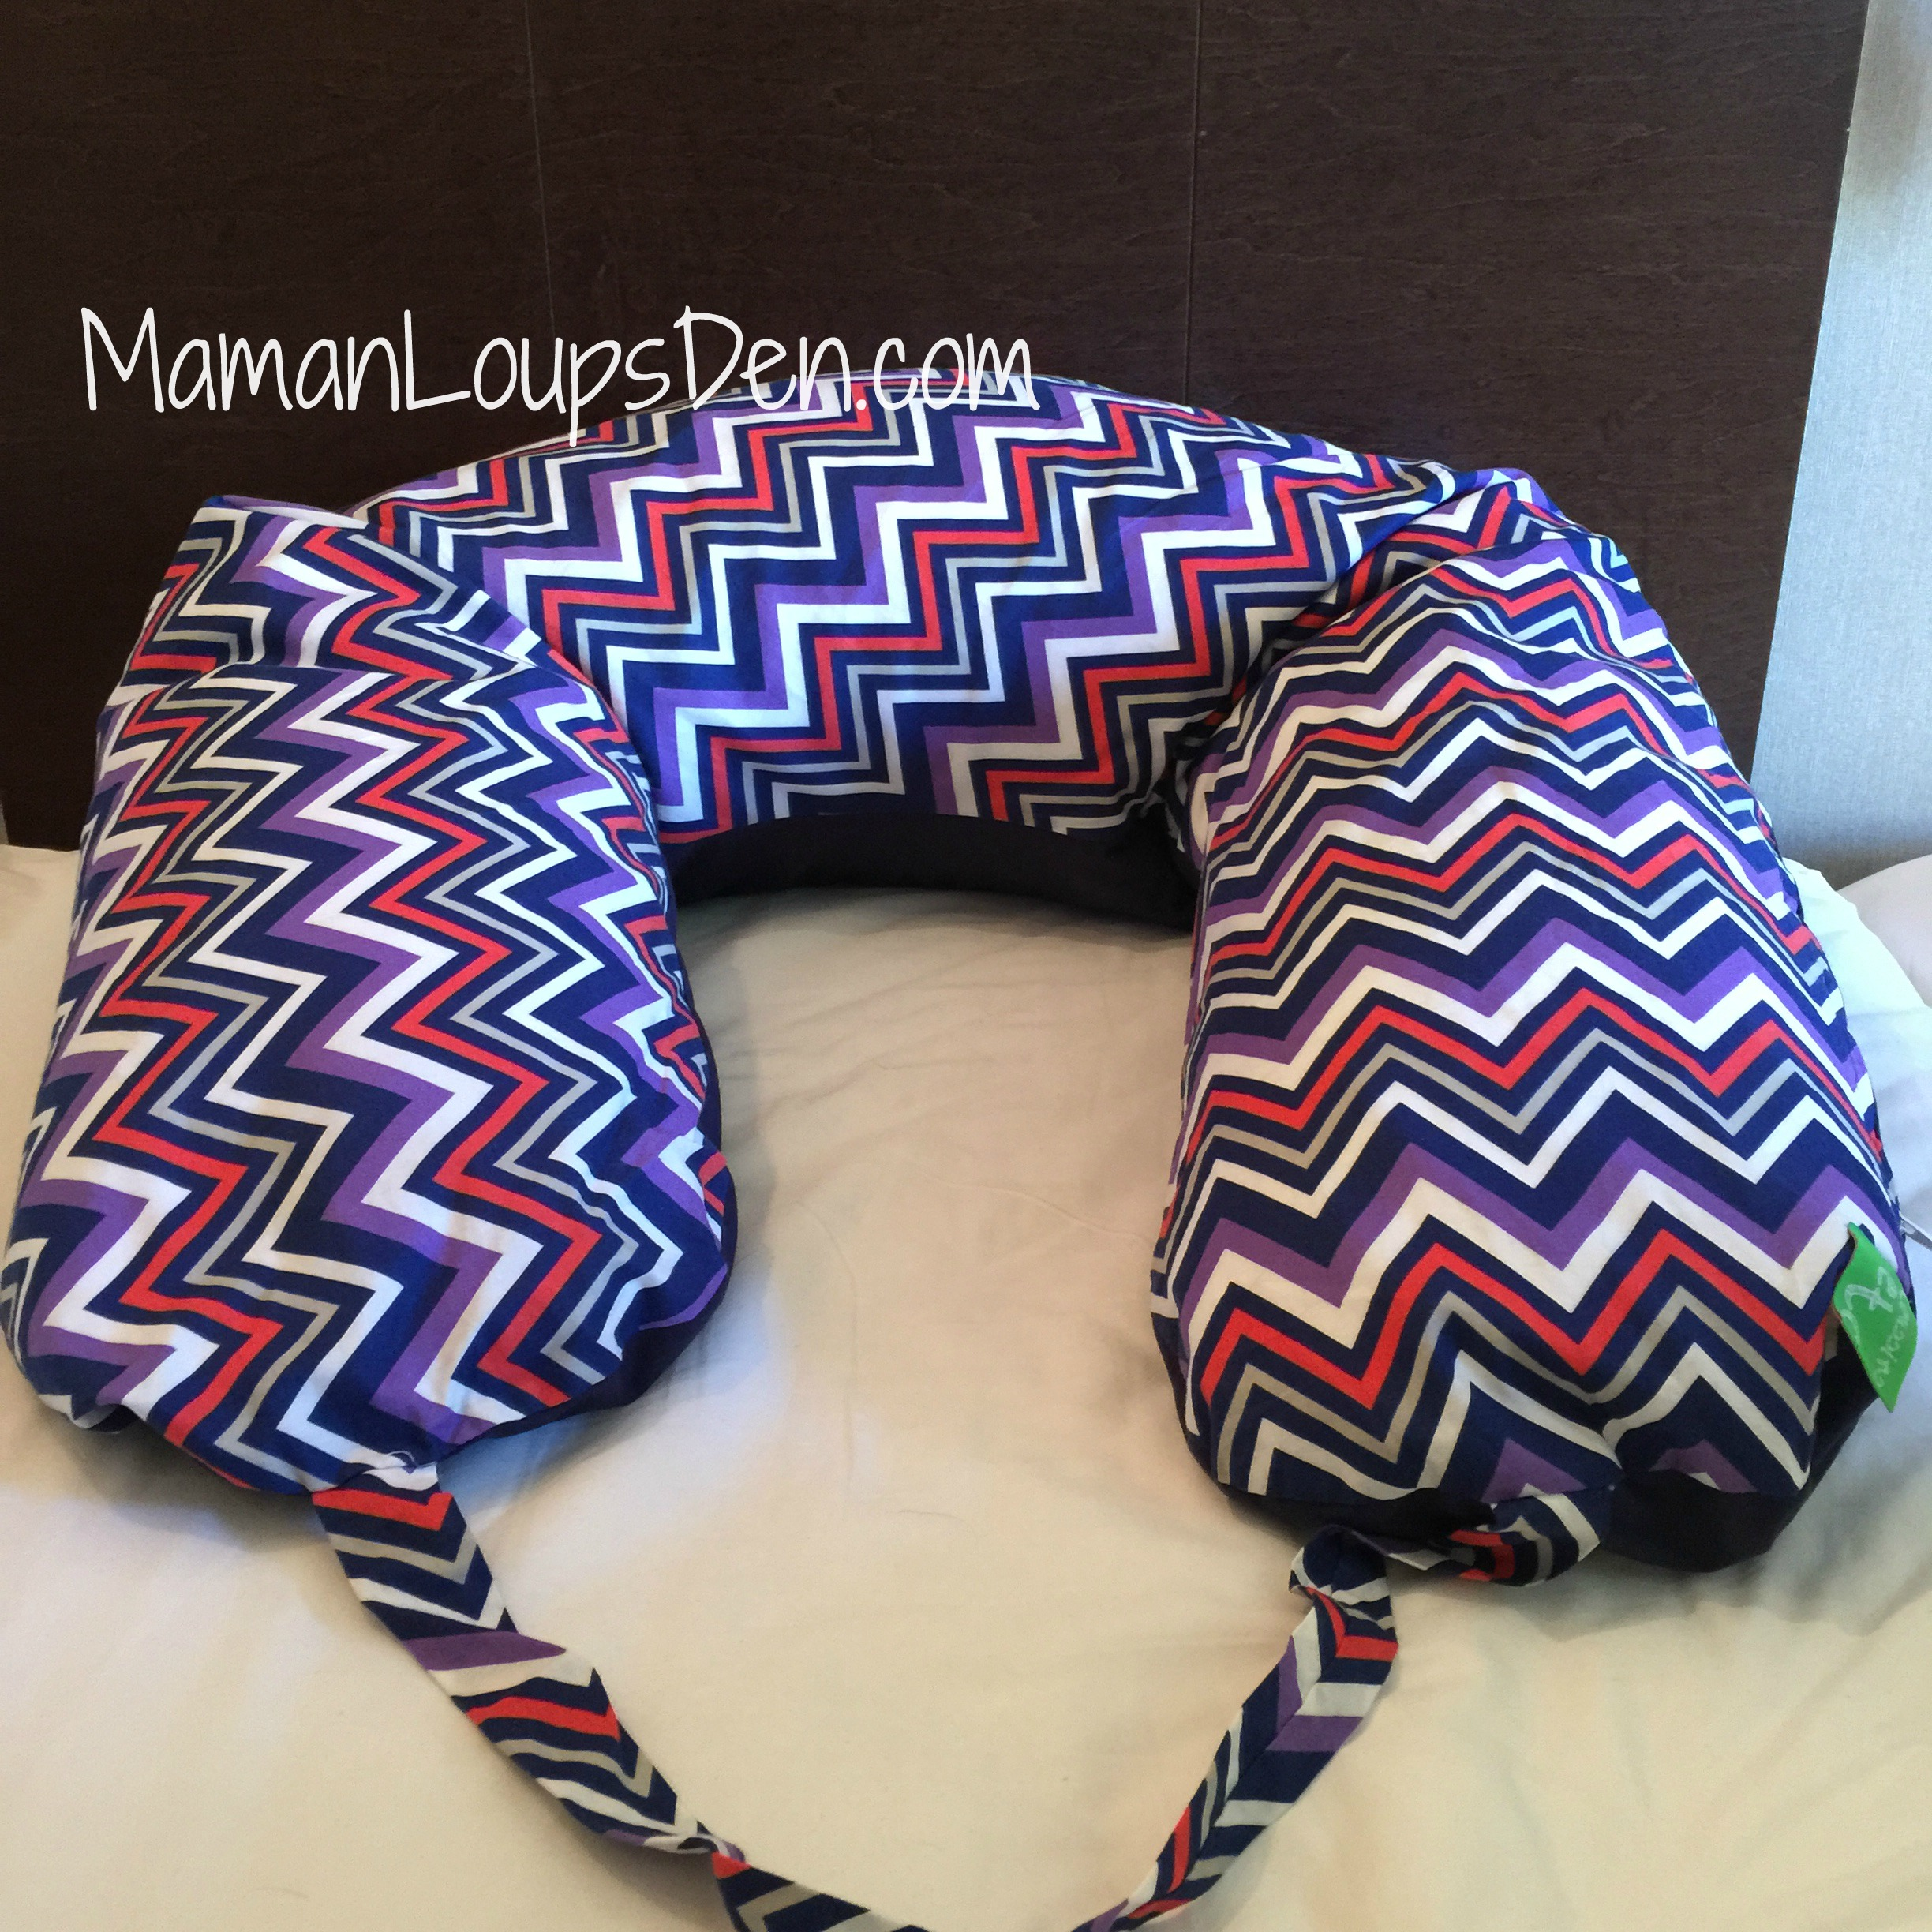 Coussins Etc. maternity pillow